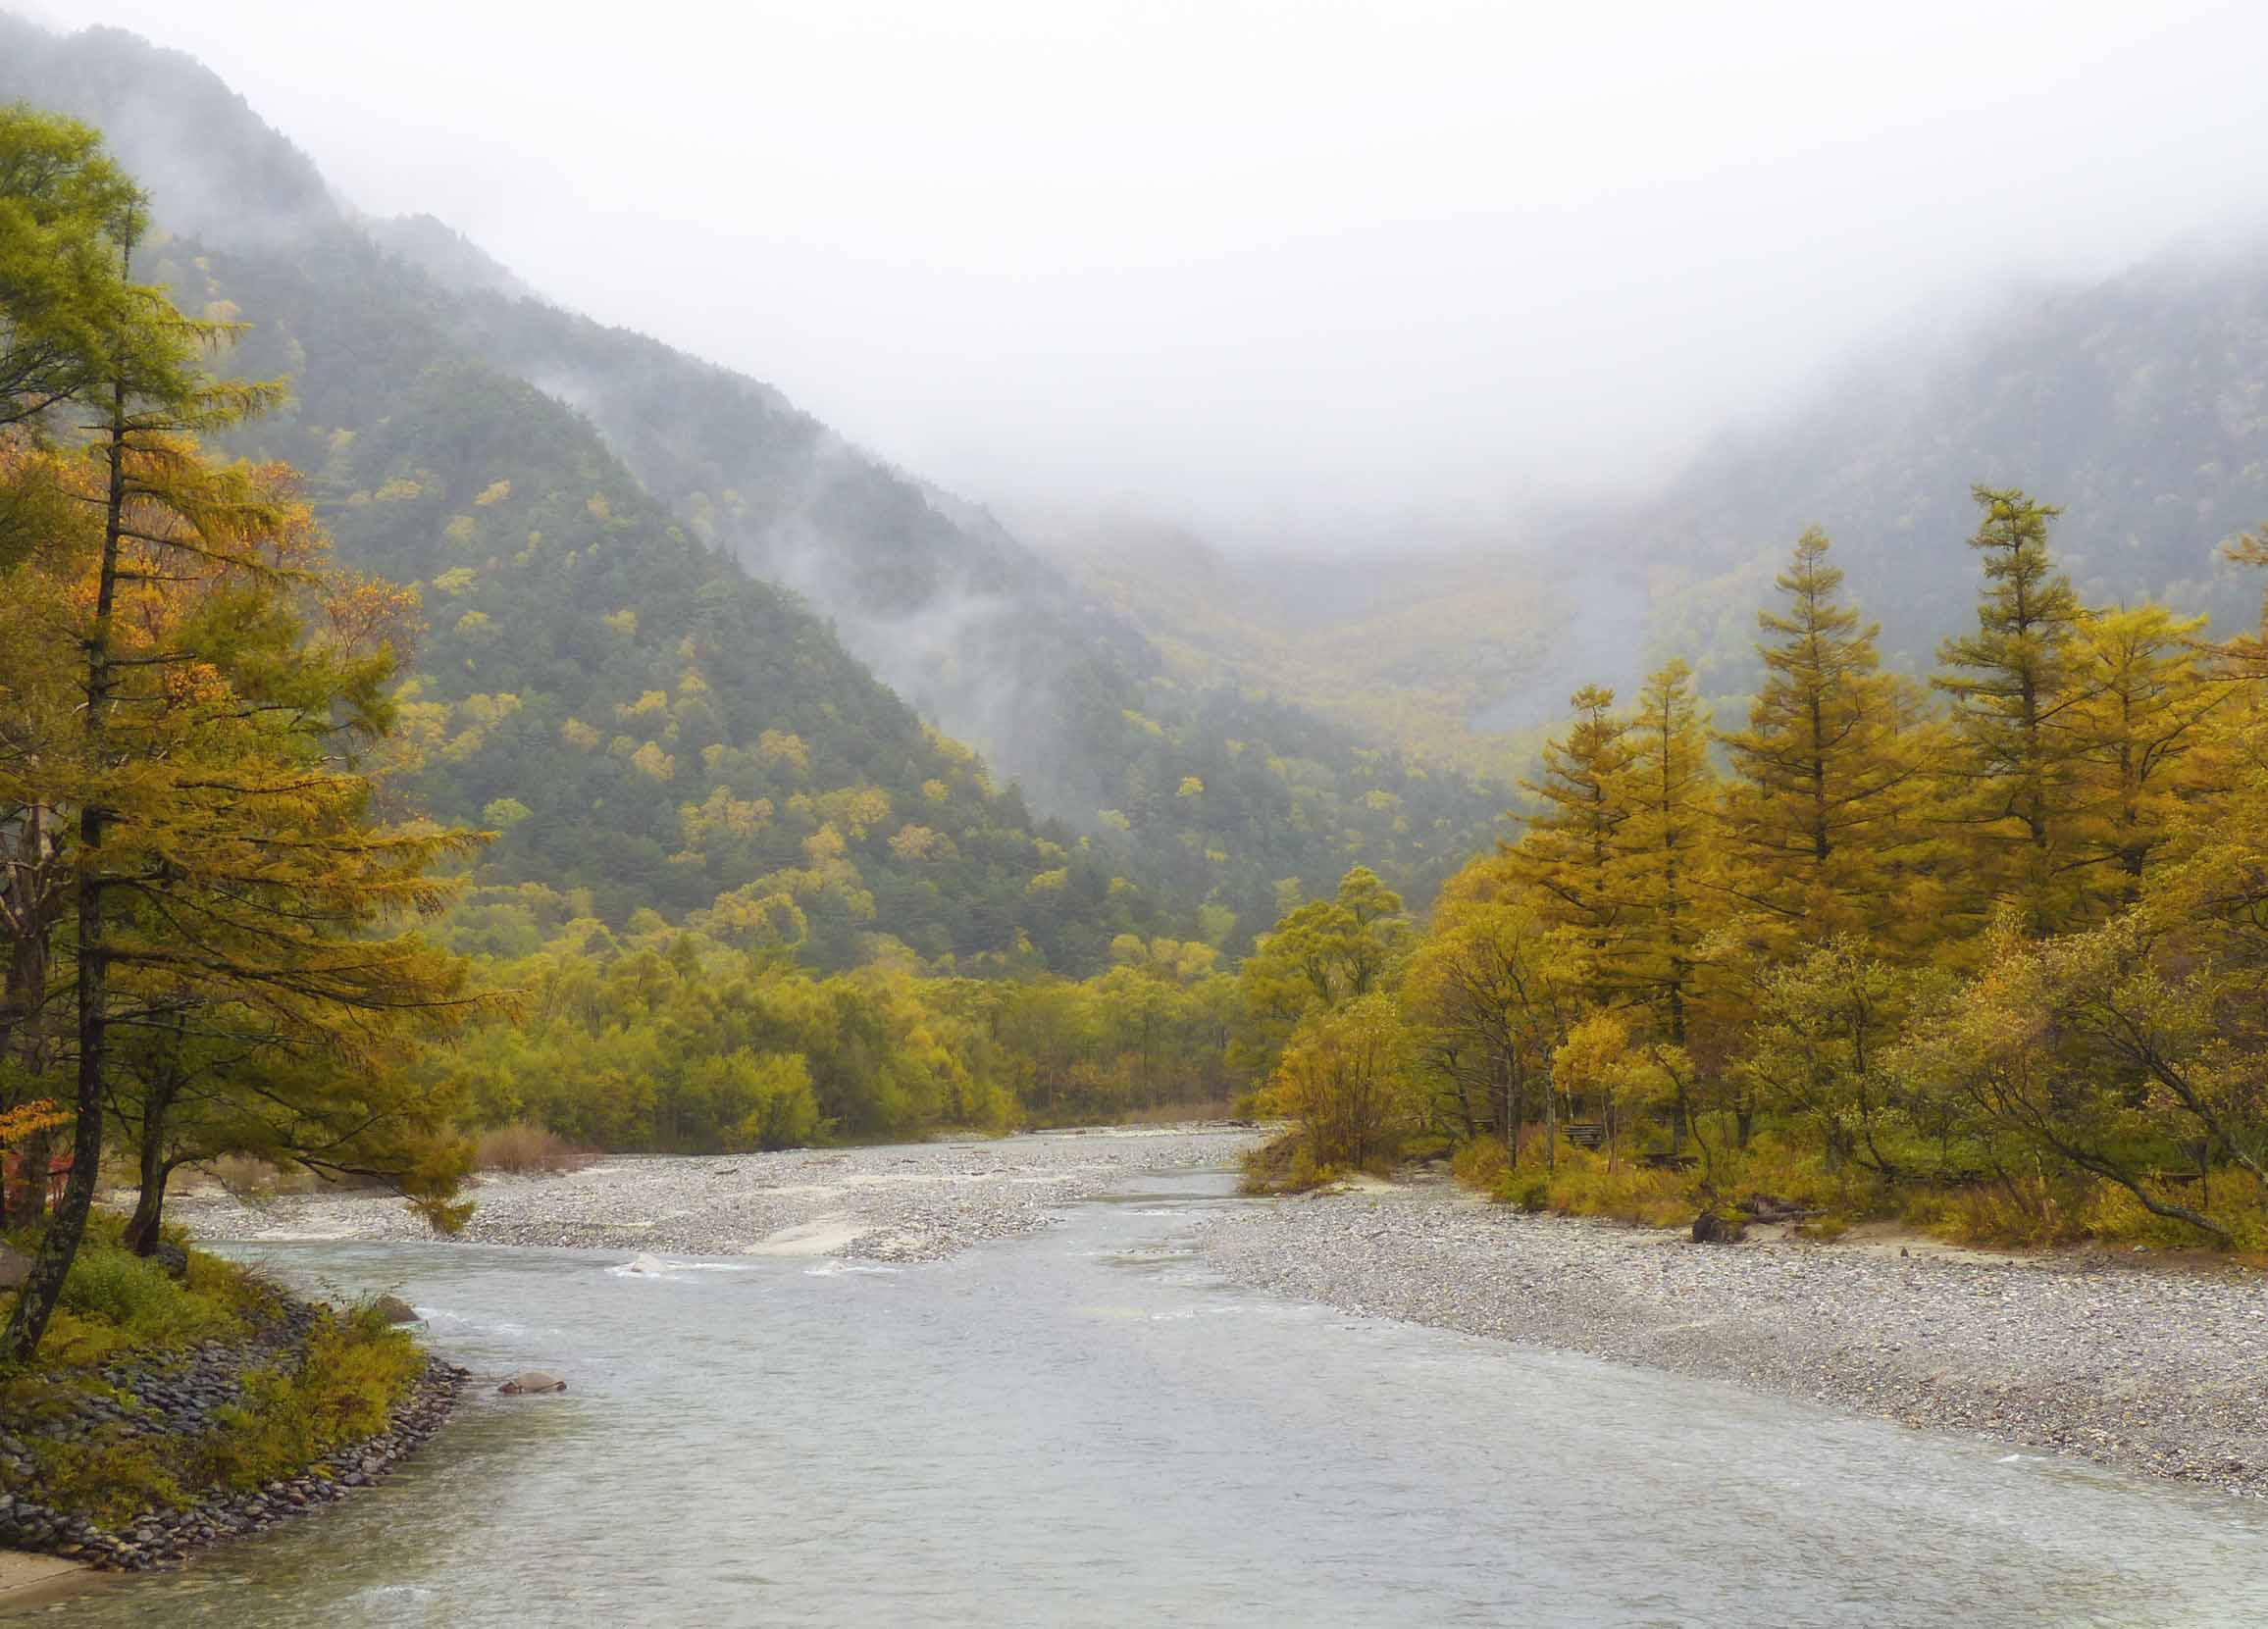 River bordered by yellow conifers and wooded hillsides